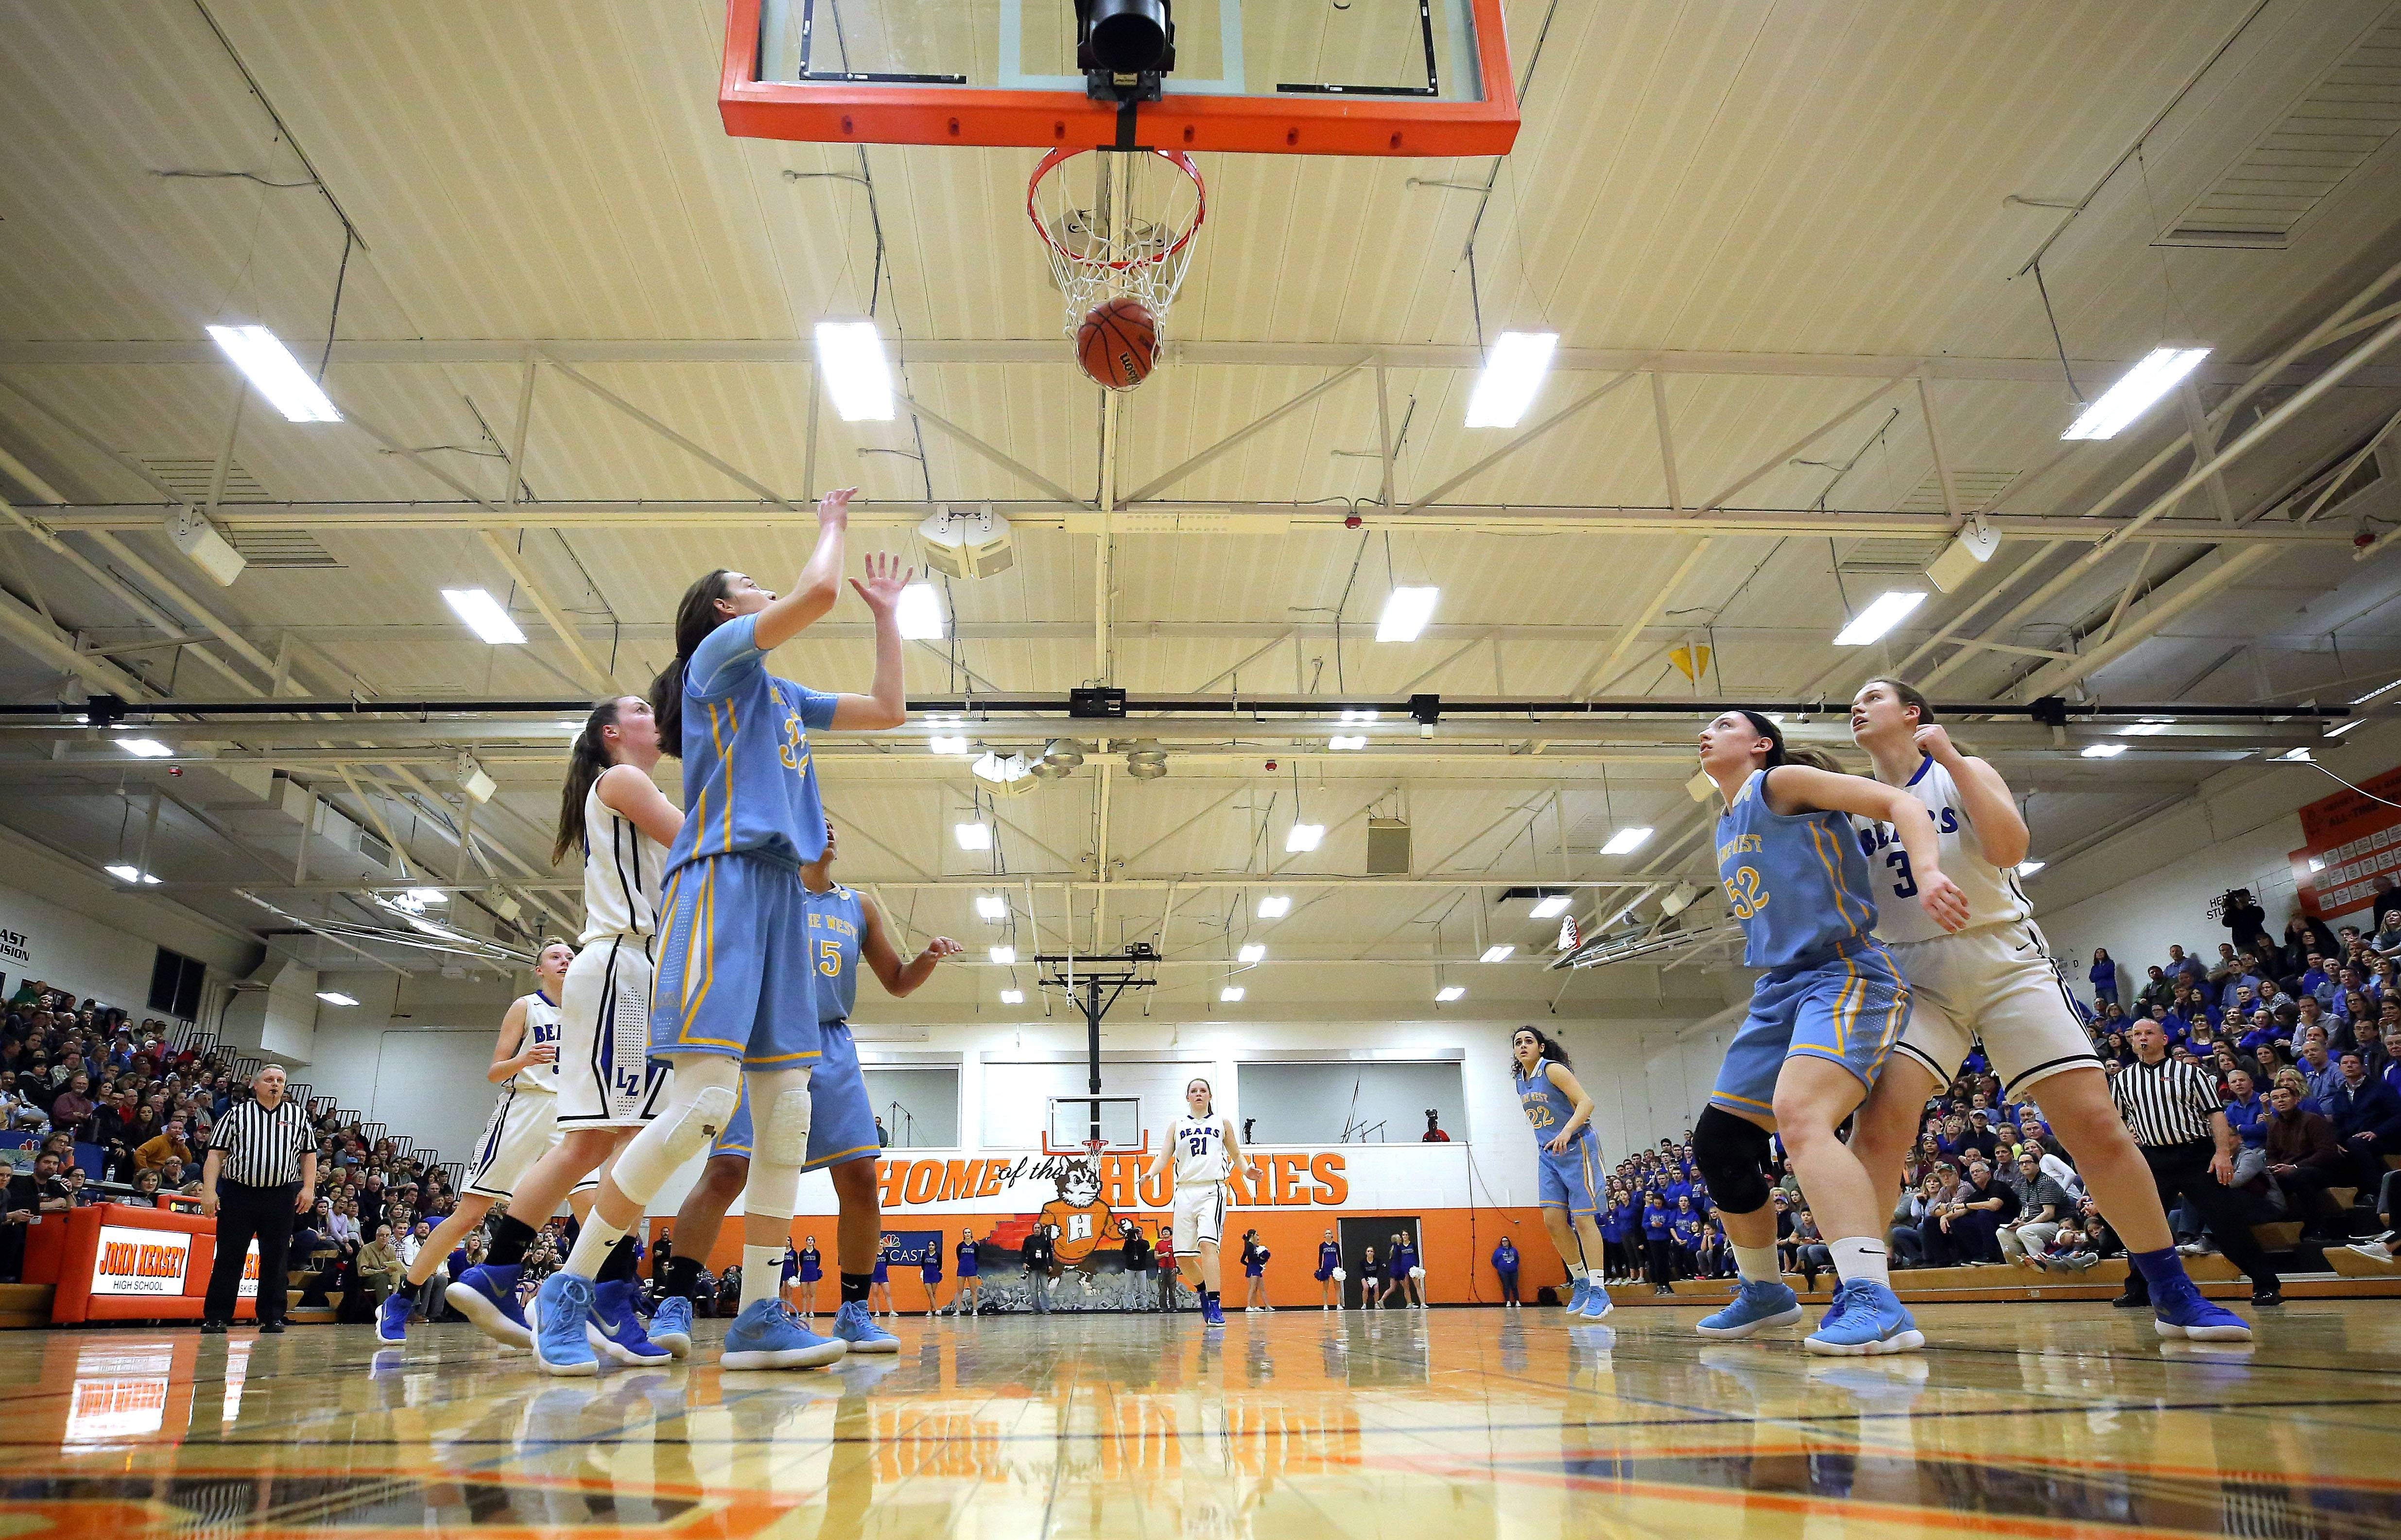 Maine West takes on Lake Zurich in the Class 4A supersectional at Hersey High School in Arlington Heights on Monday.